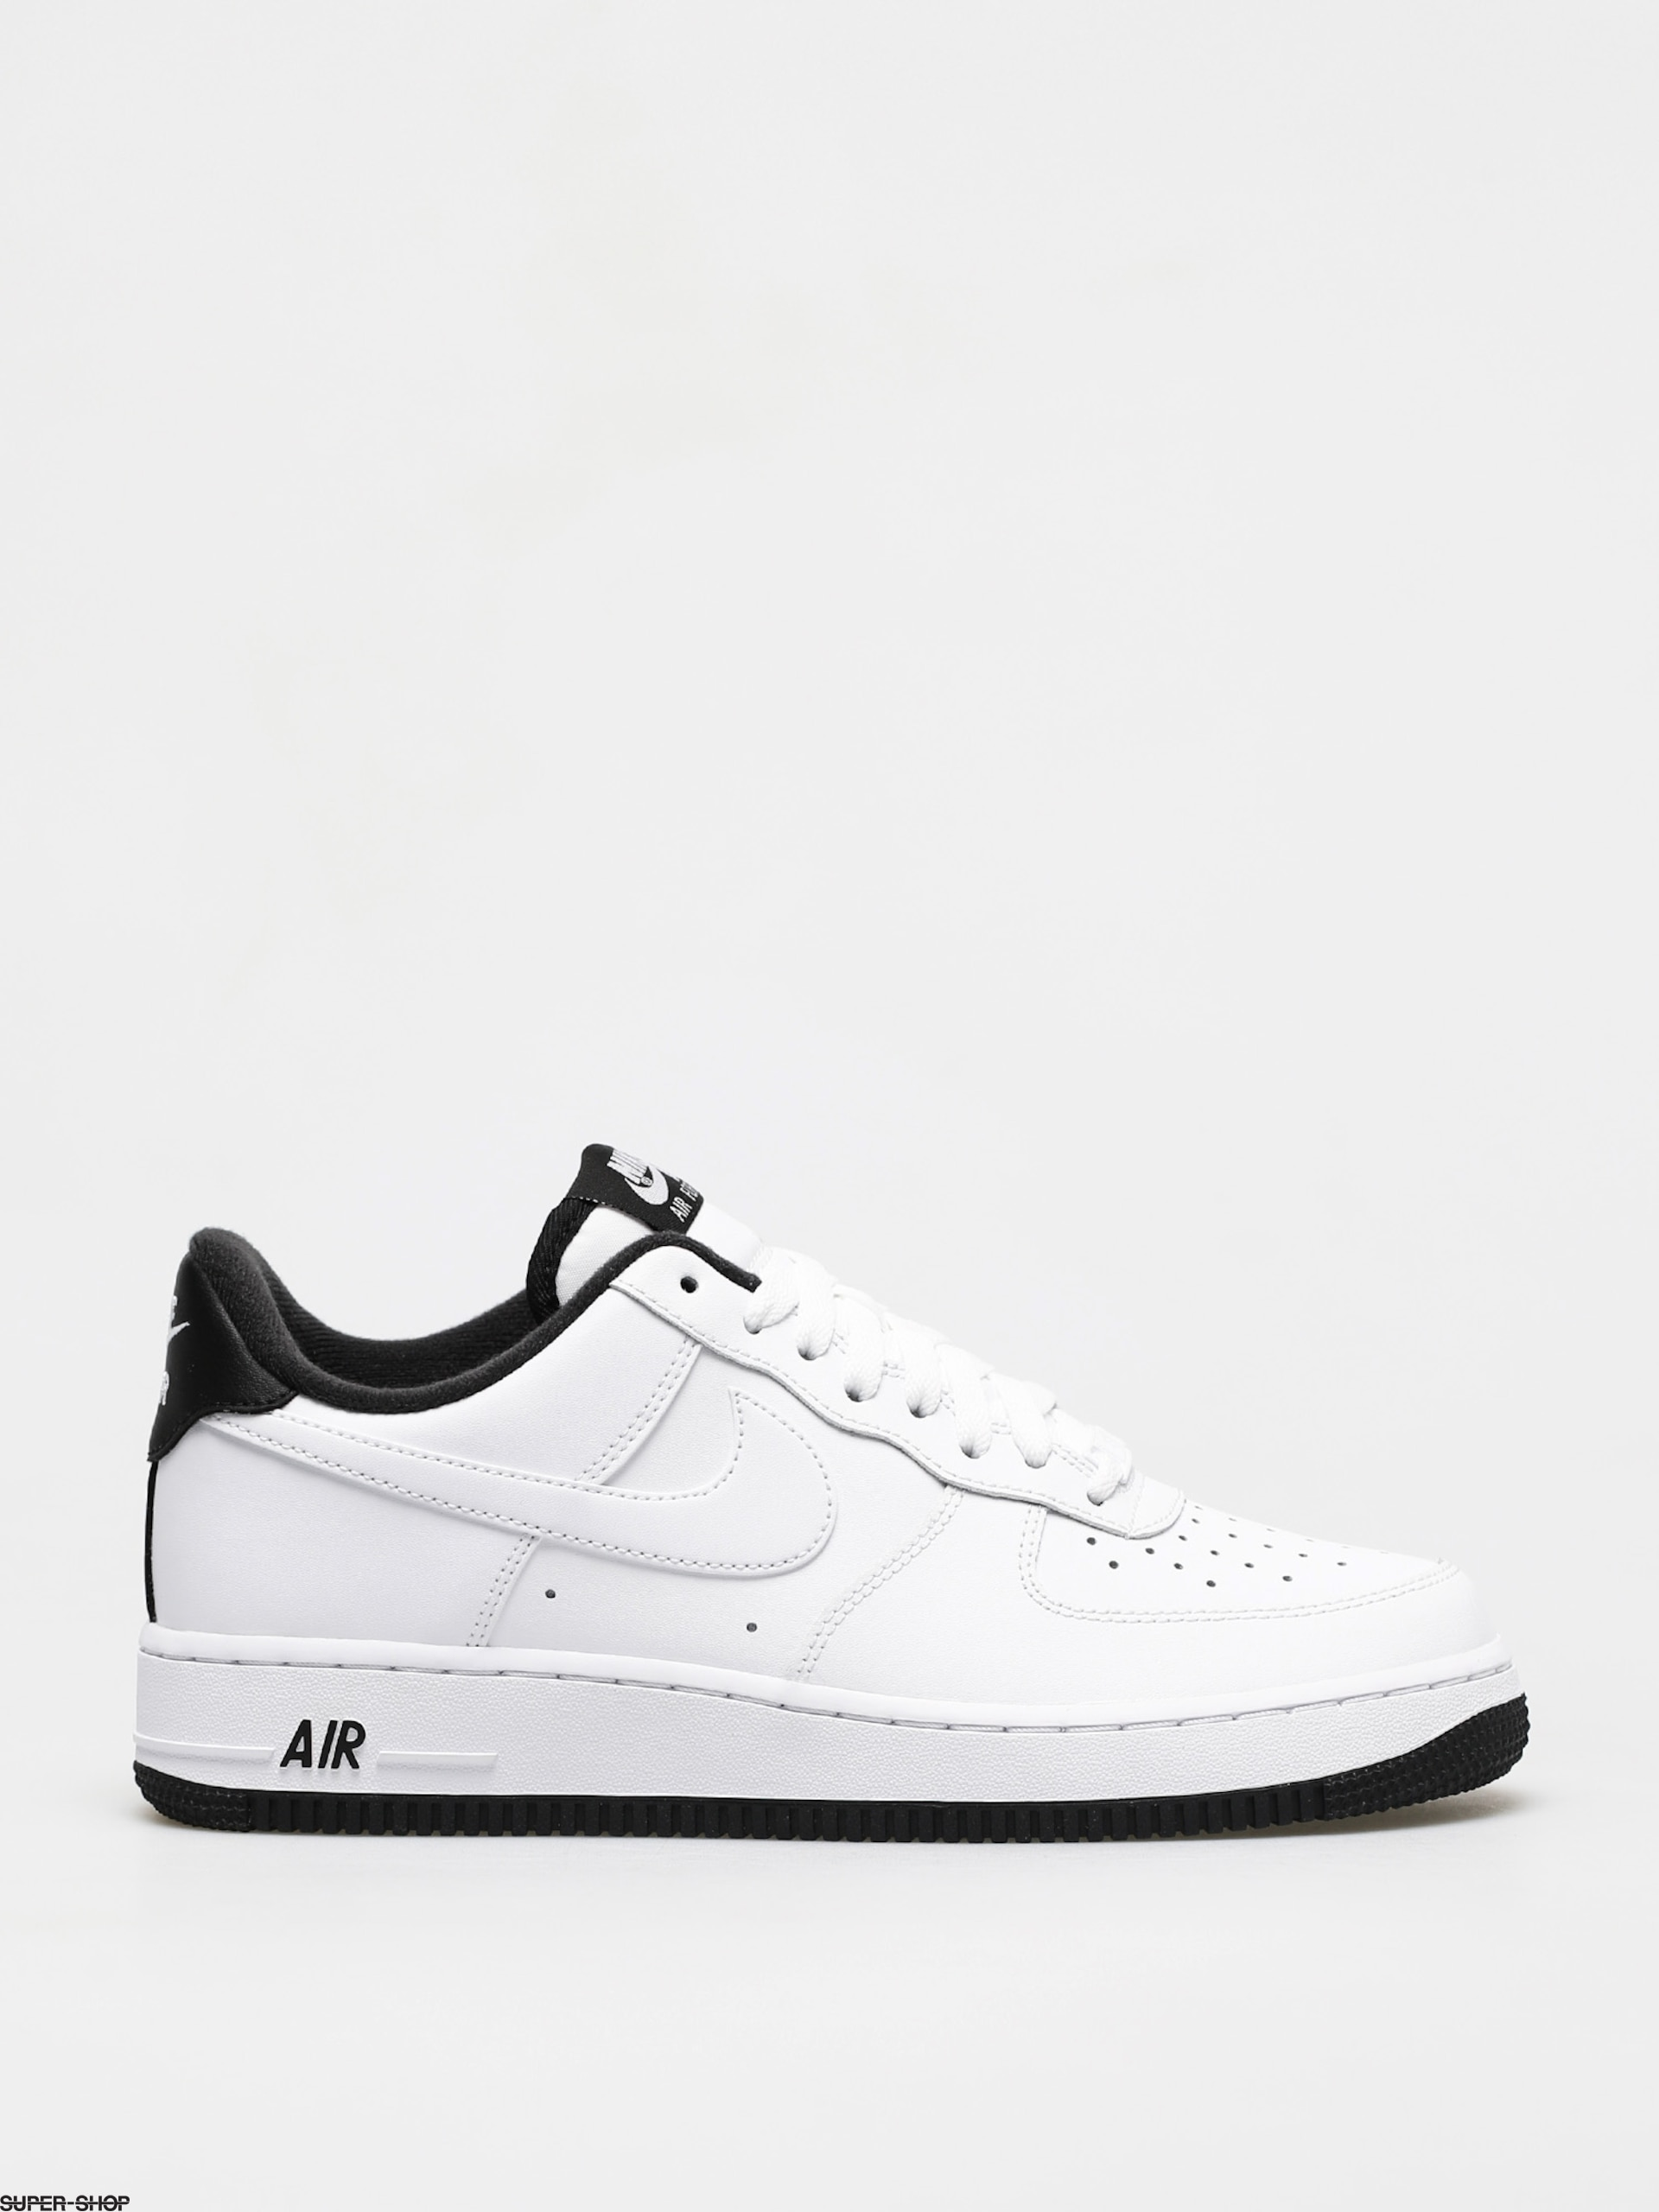 Nike Air Force 1 Shoes Nike Air Force 1 07 1 Shoes (white/black white)